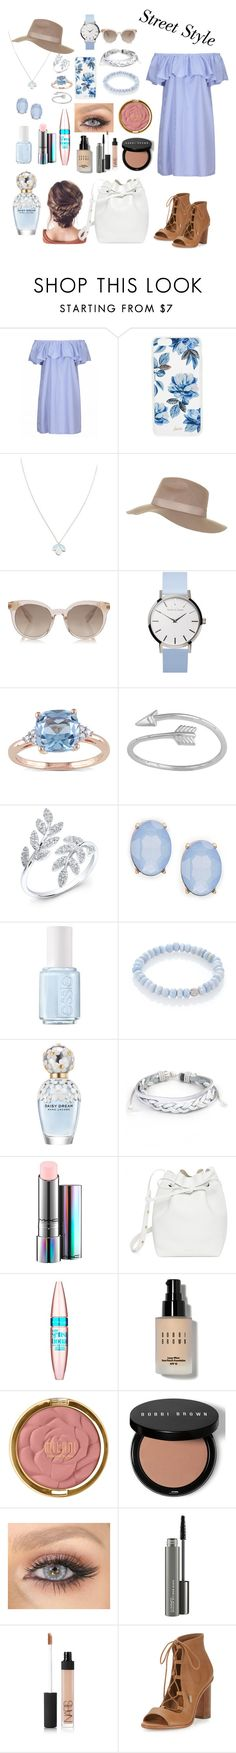 """""""Street style"""" by patriciaaa02 ❤ liked on Polyvore featuring Sonix, Wolf & Moon, Topshop, Miadora, Midsummer Star, Anne Sisteron, Cara, Essie, Sydney Evan and Marc Jacobs"""